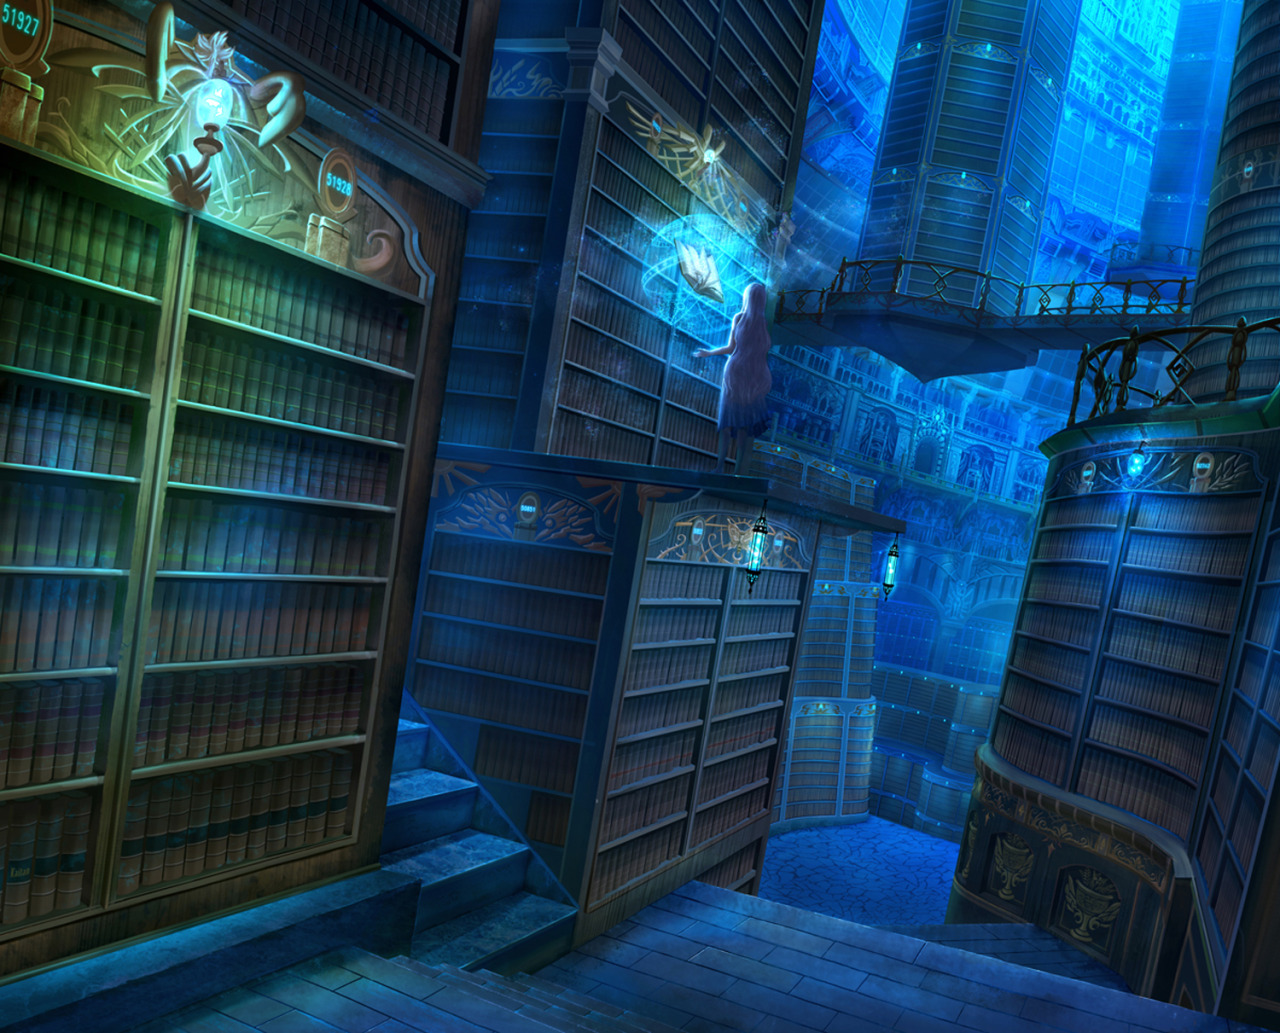 The Blue Library